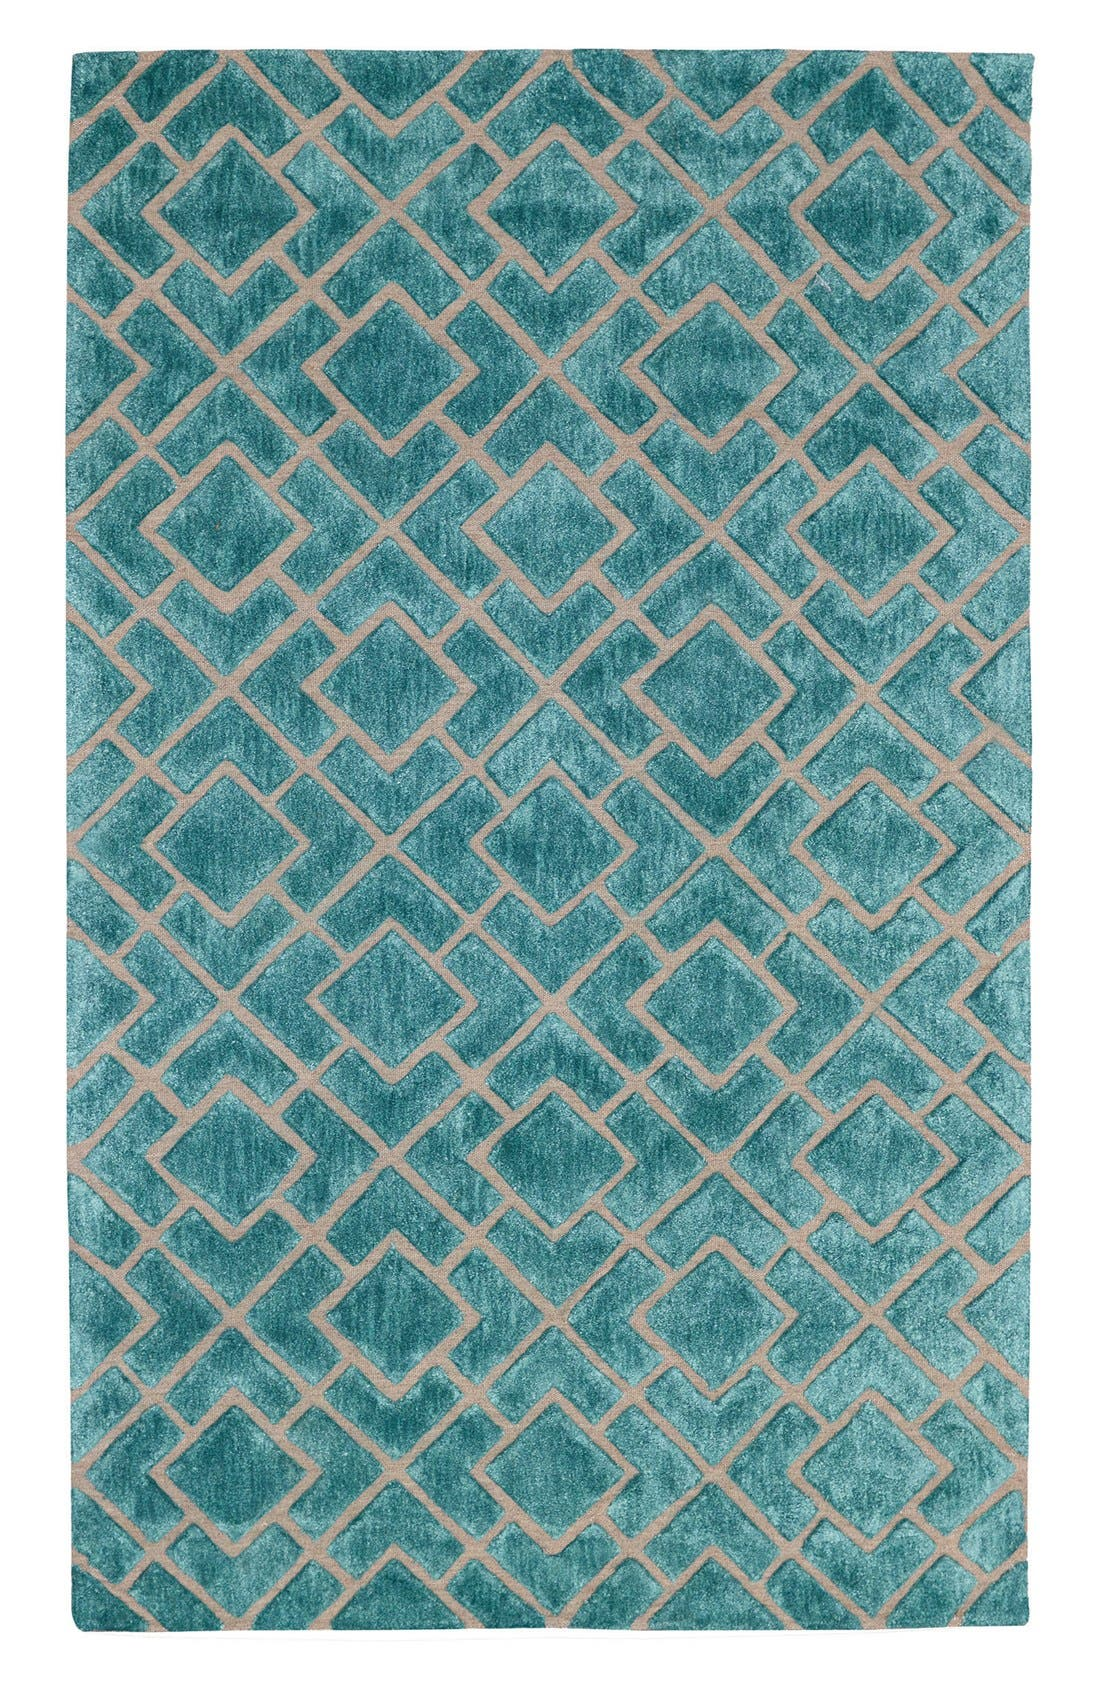 VILLA HOME COLLECTION,                             'Over Tufted - Turquoise' Rug,                             Main thumbnail 1, color,                             440